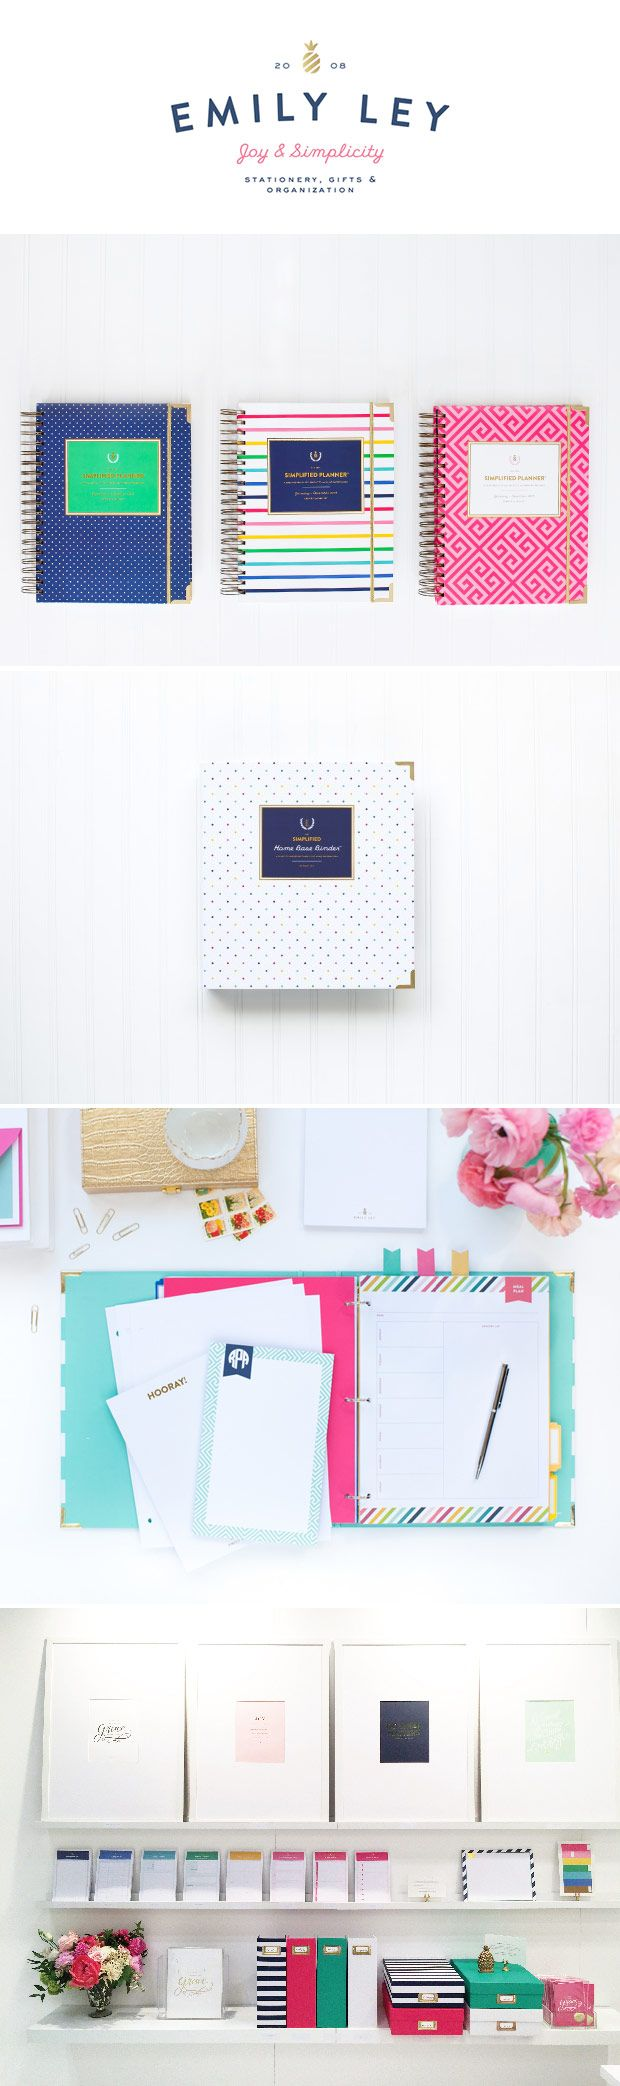 This is a NEED come January. Need. I need it. NEED.  Emily Ley stationery, gifts  organization.